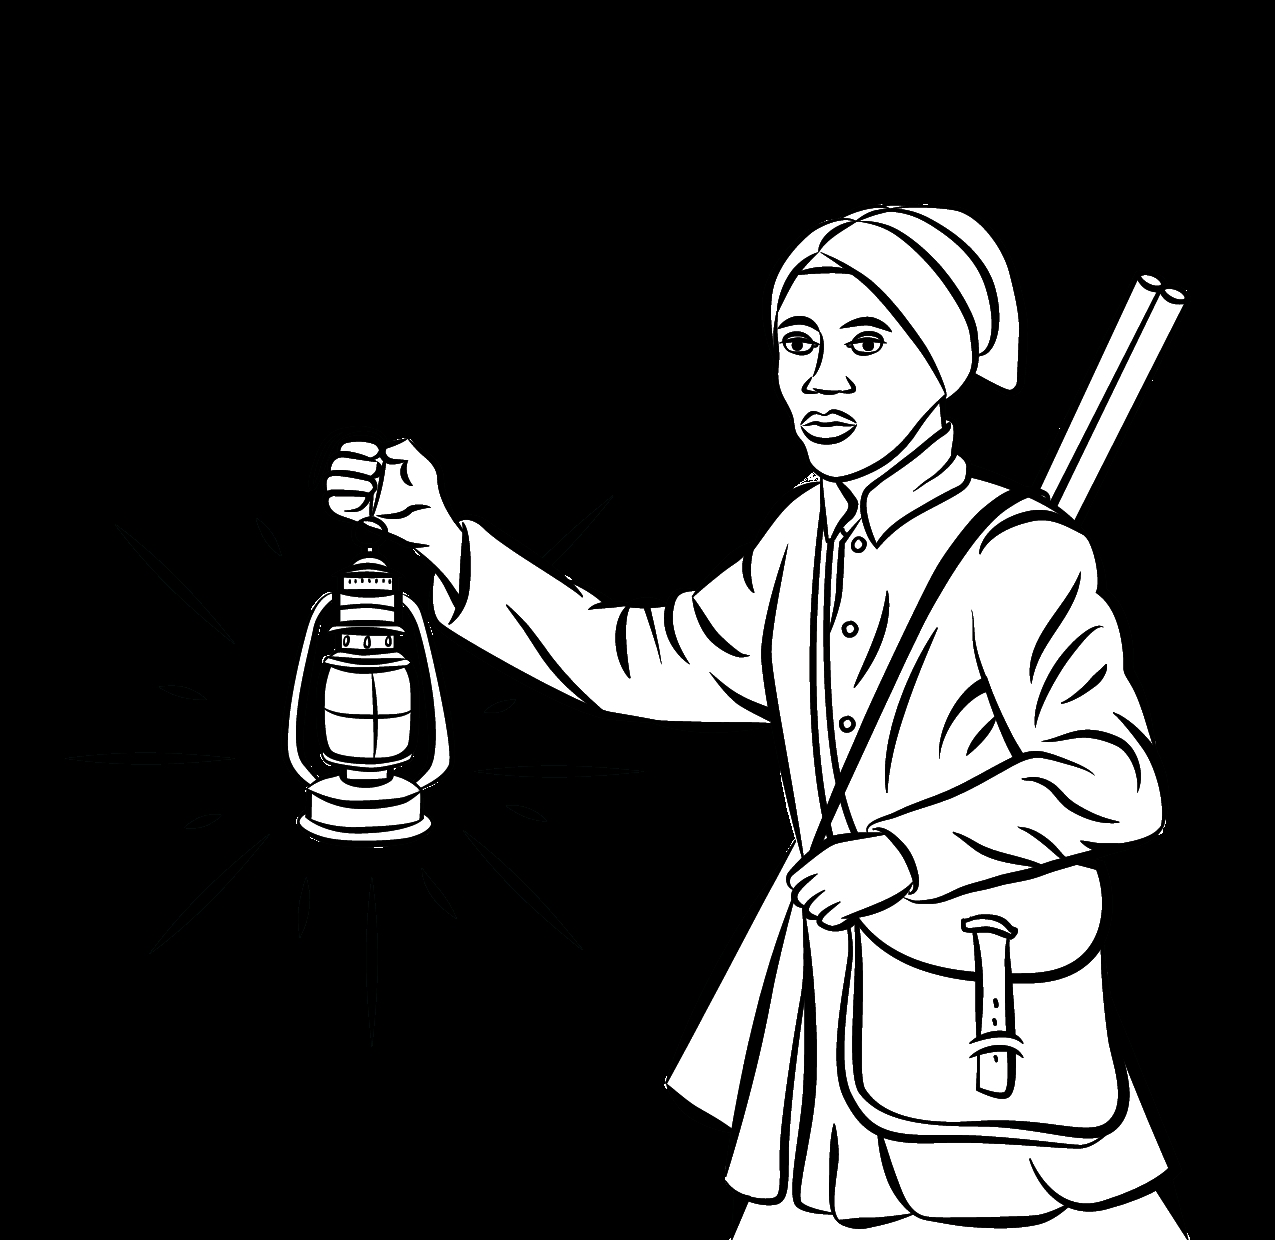 Harriet Tubman Coloring Page Sheets - Worksheet & Coloring Pages